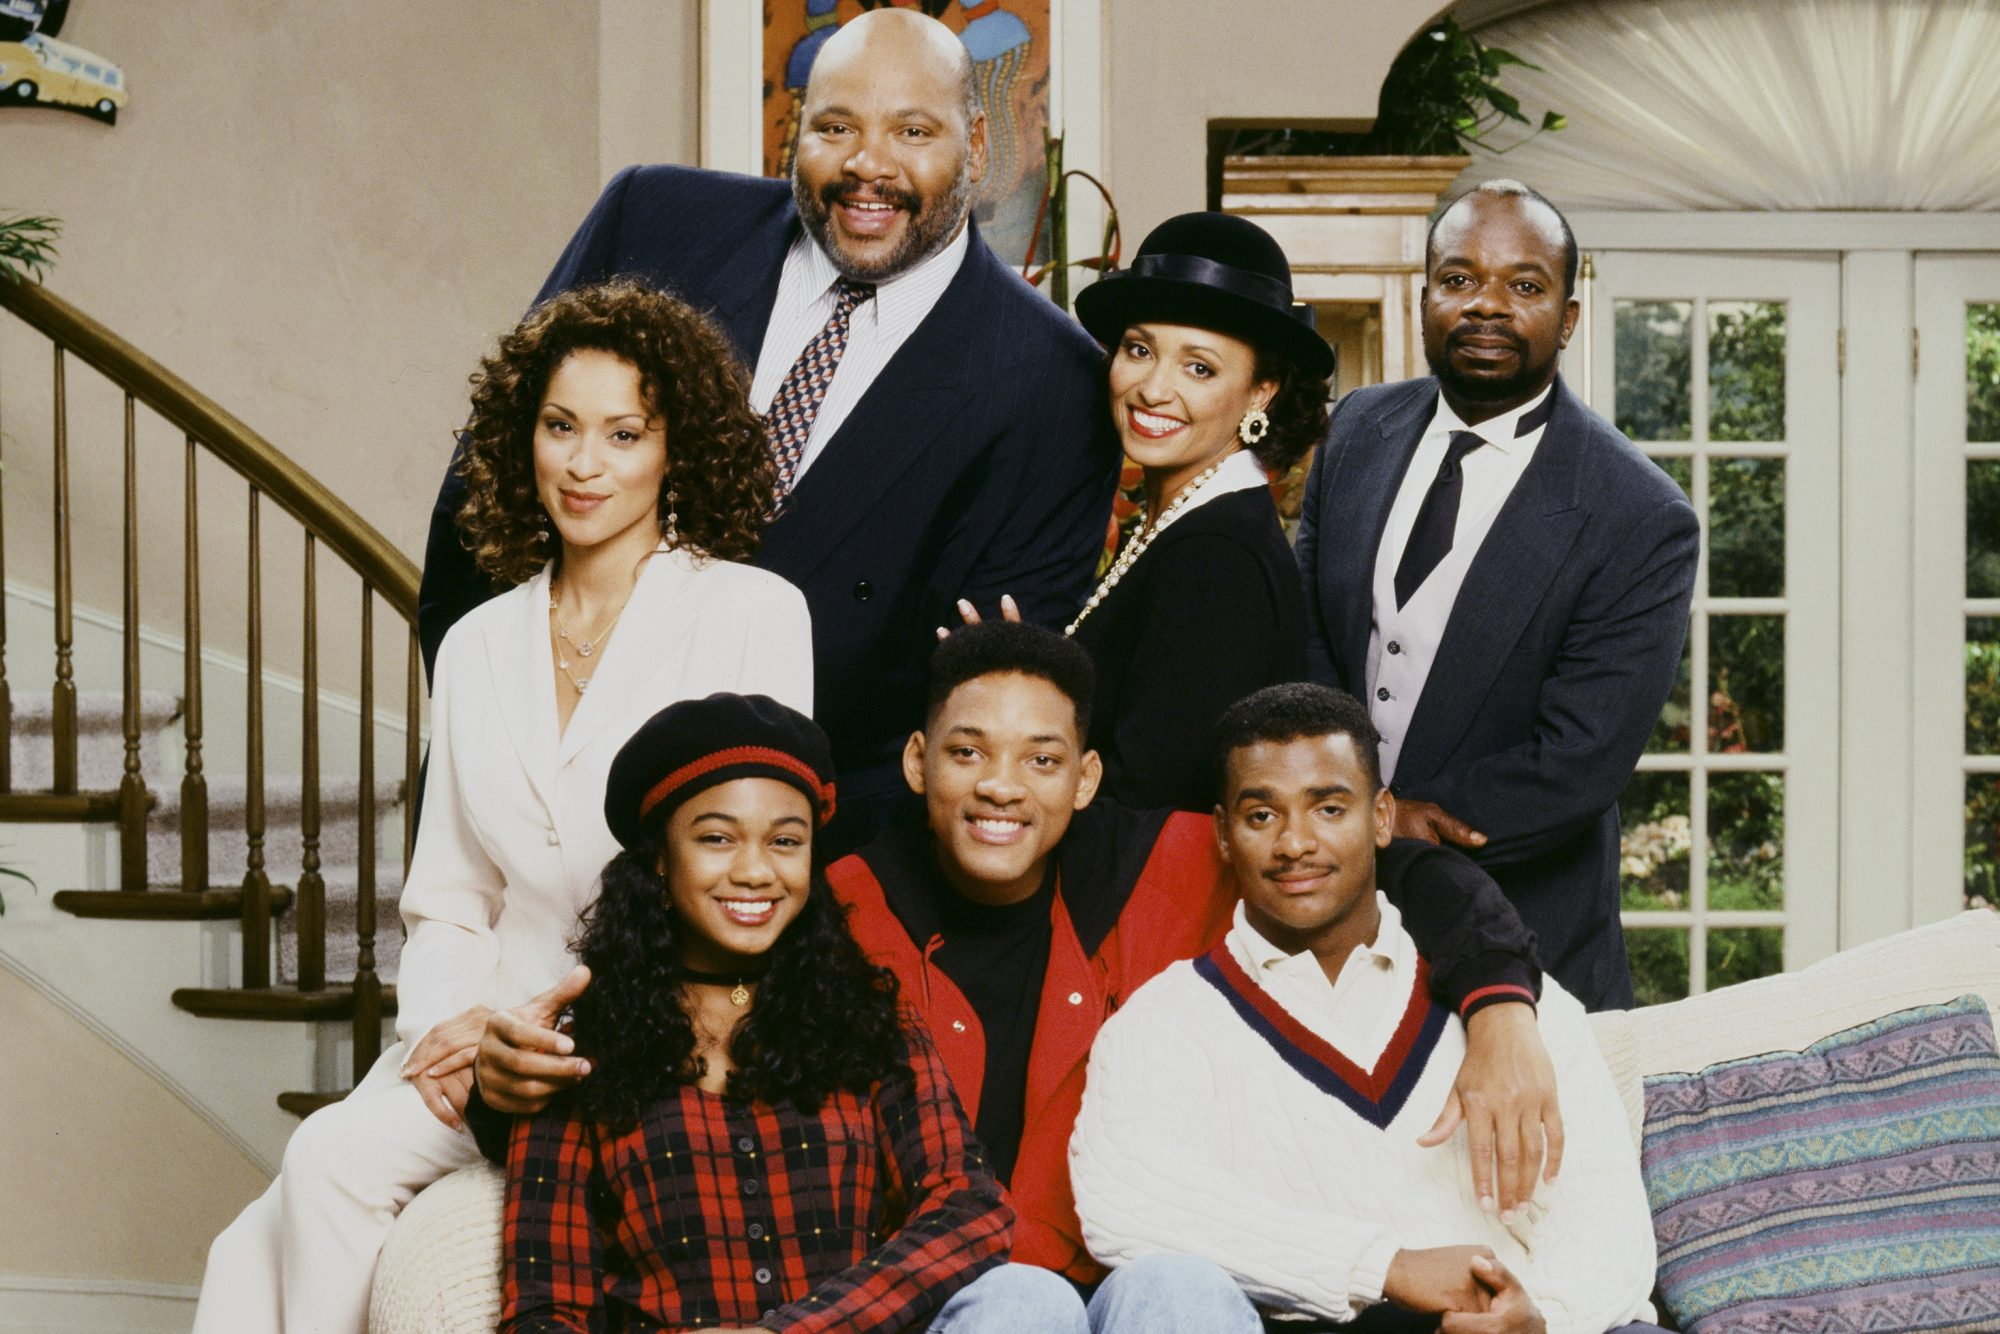 fresh prince of bel air cast reunion